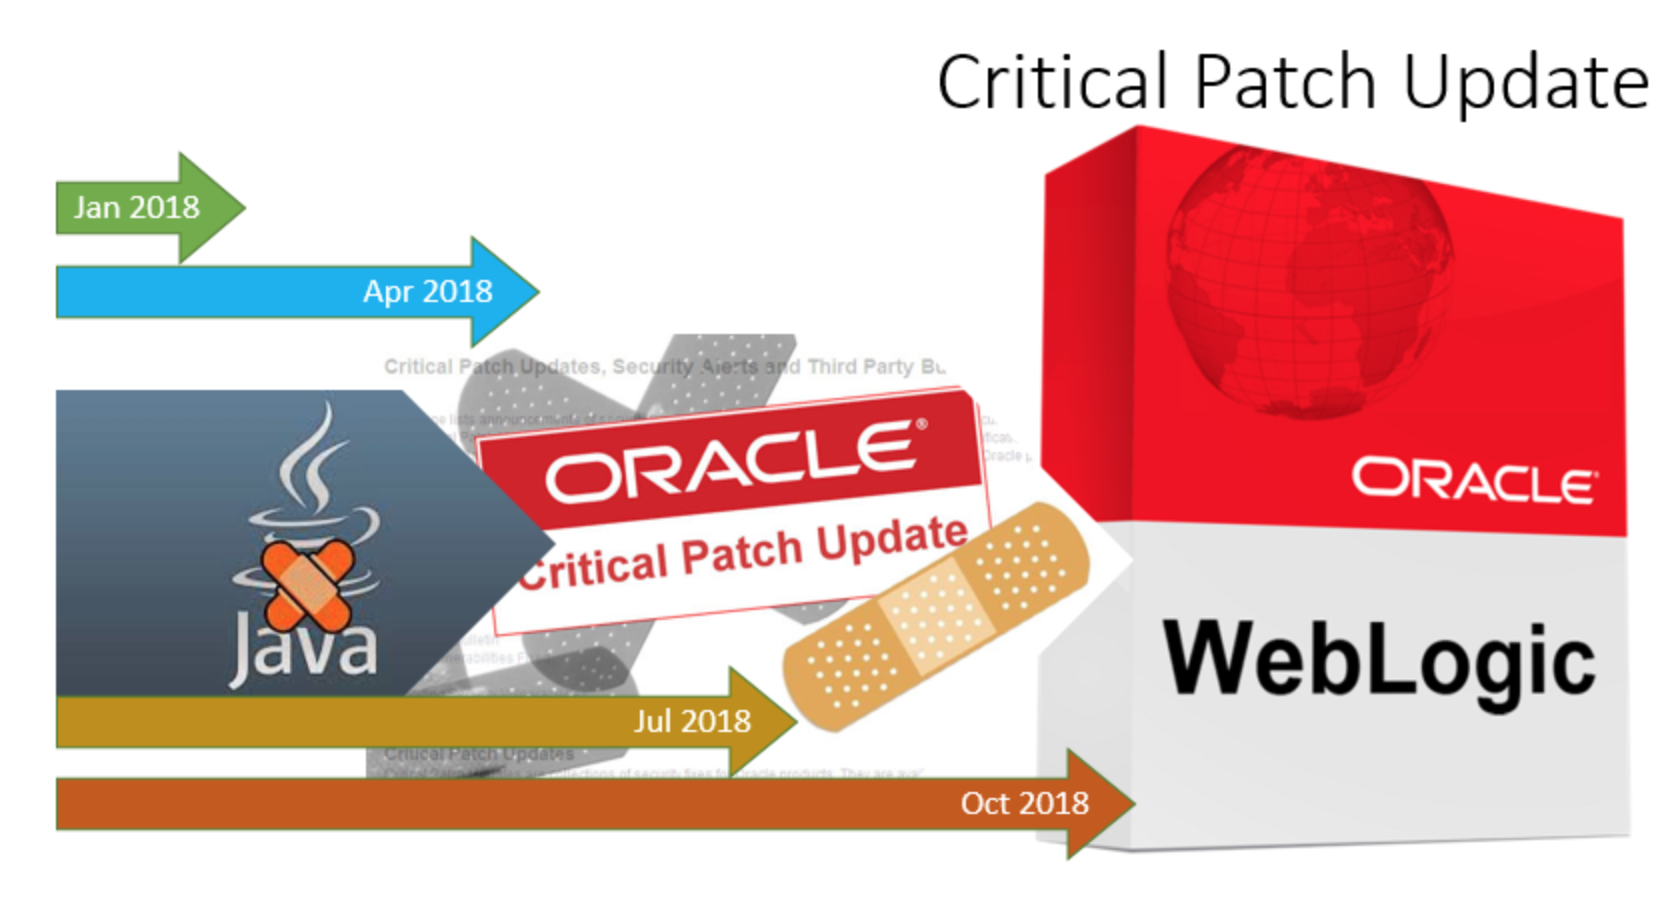 Oracle Weblogic 12.2.1.4 - WLS PATCH SET UPDATE 12.2.1.4.191220 fix Coherence Exception (Wrapped) null